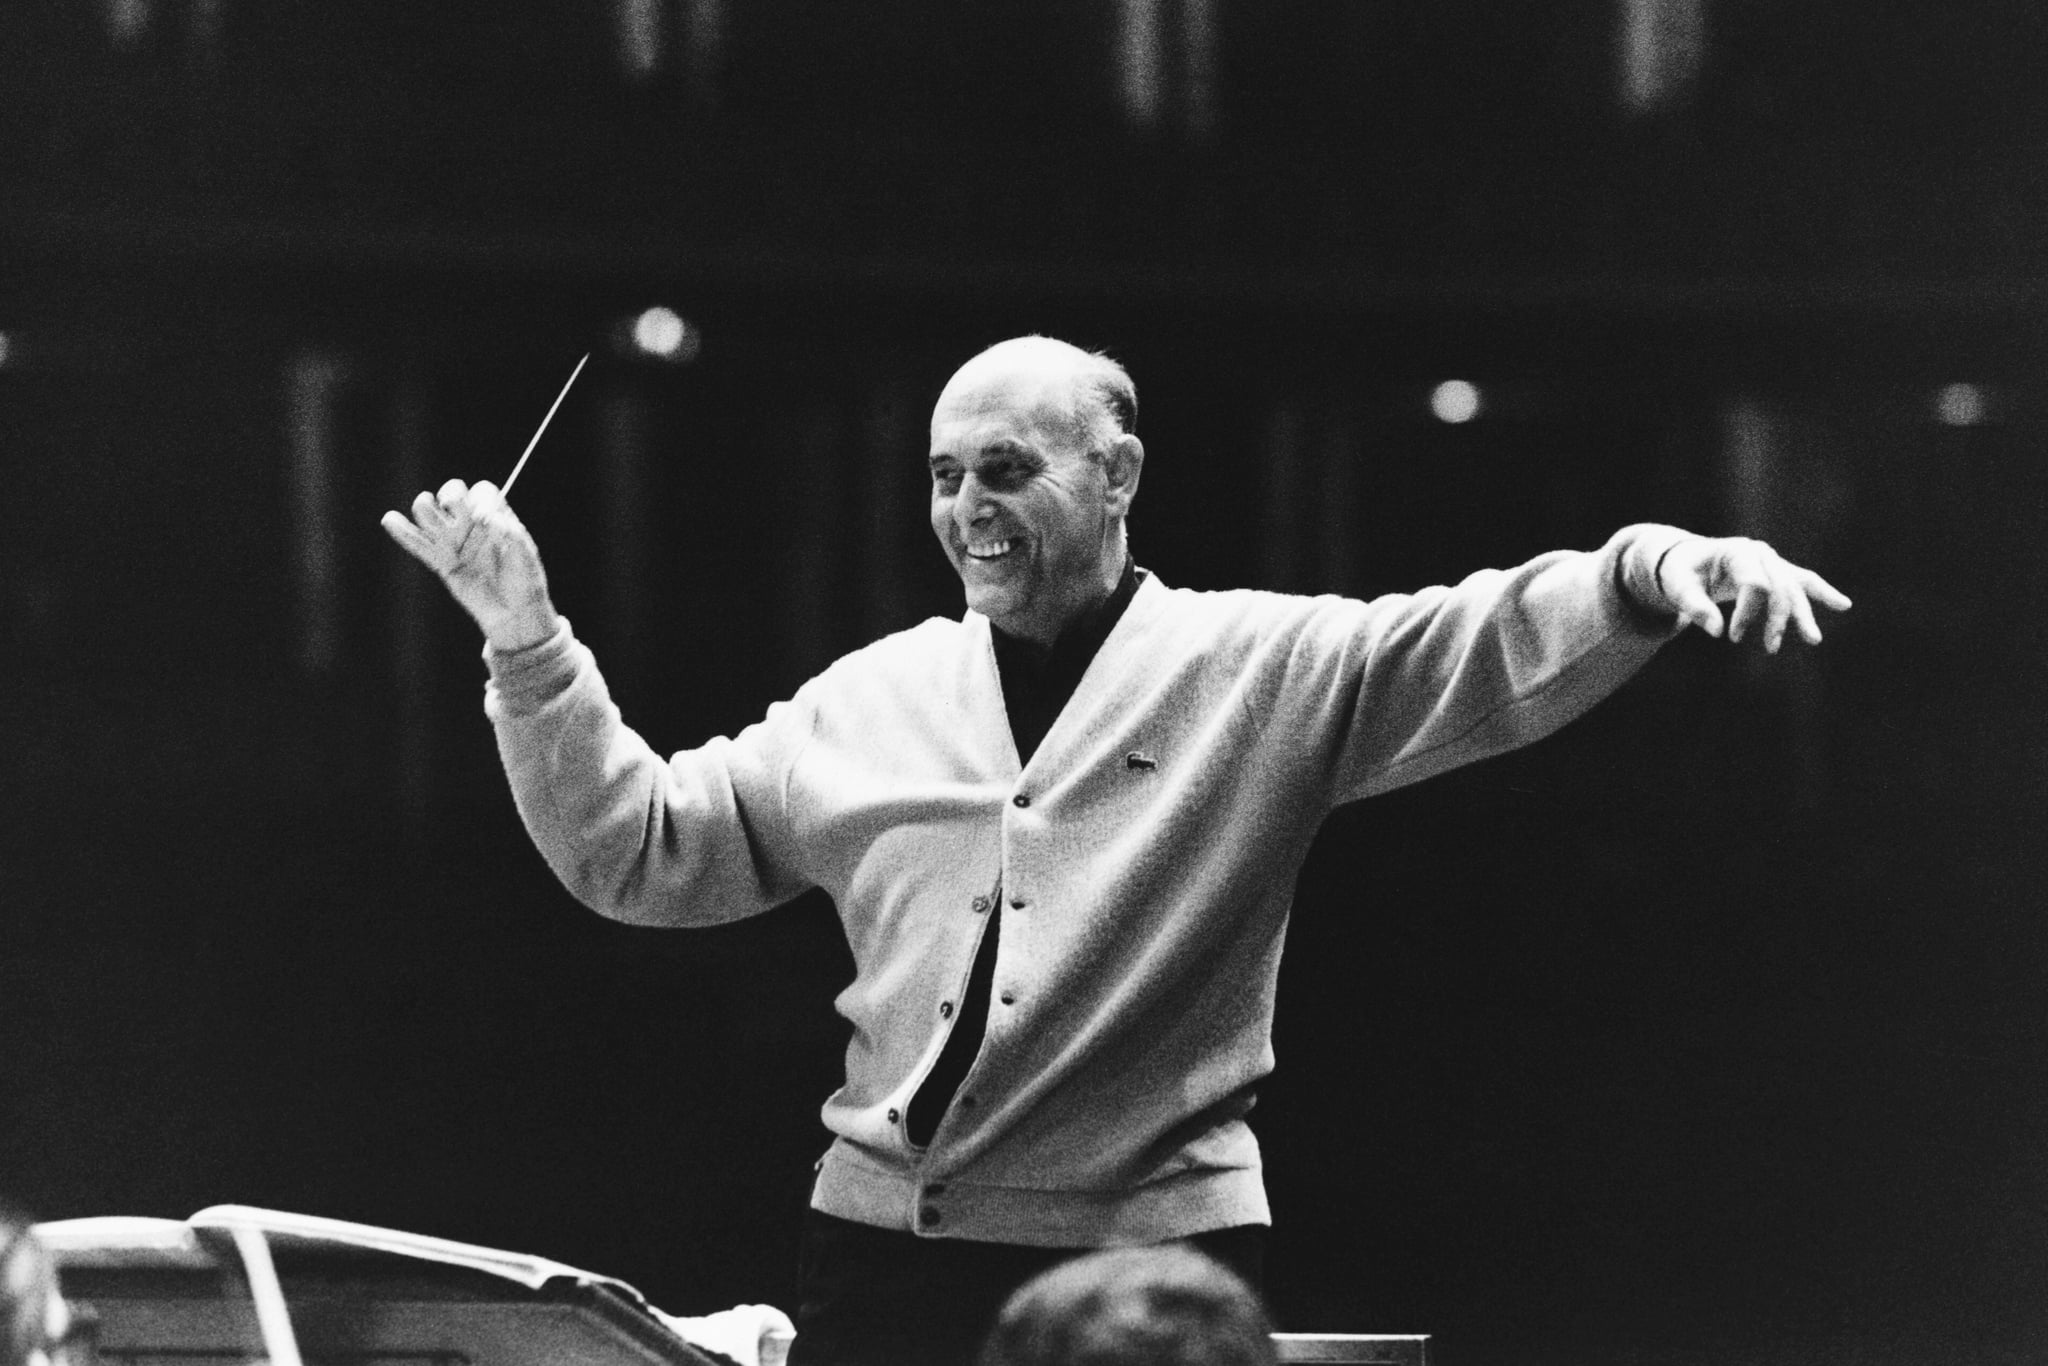 Sir Georg Solti Conducts The Chicago Symphony Orchestra at the Albert Hall. (Photo by © Hulton-Deutsch Collection/CORBIS/Corbis via Getty Images)